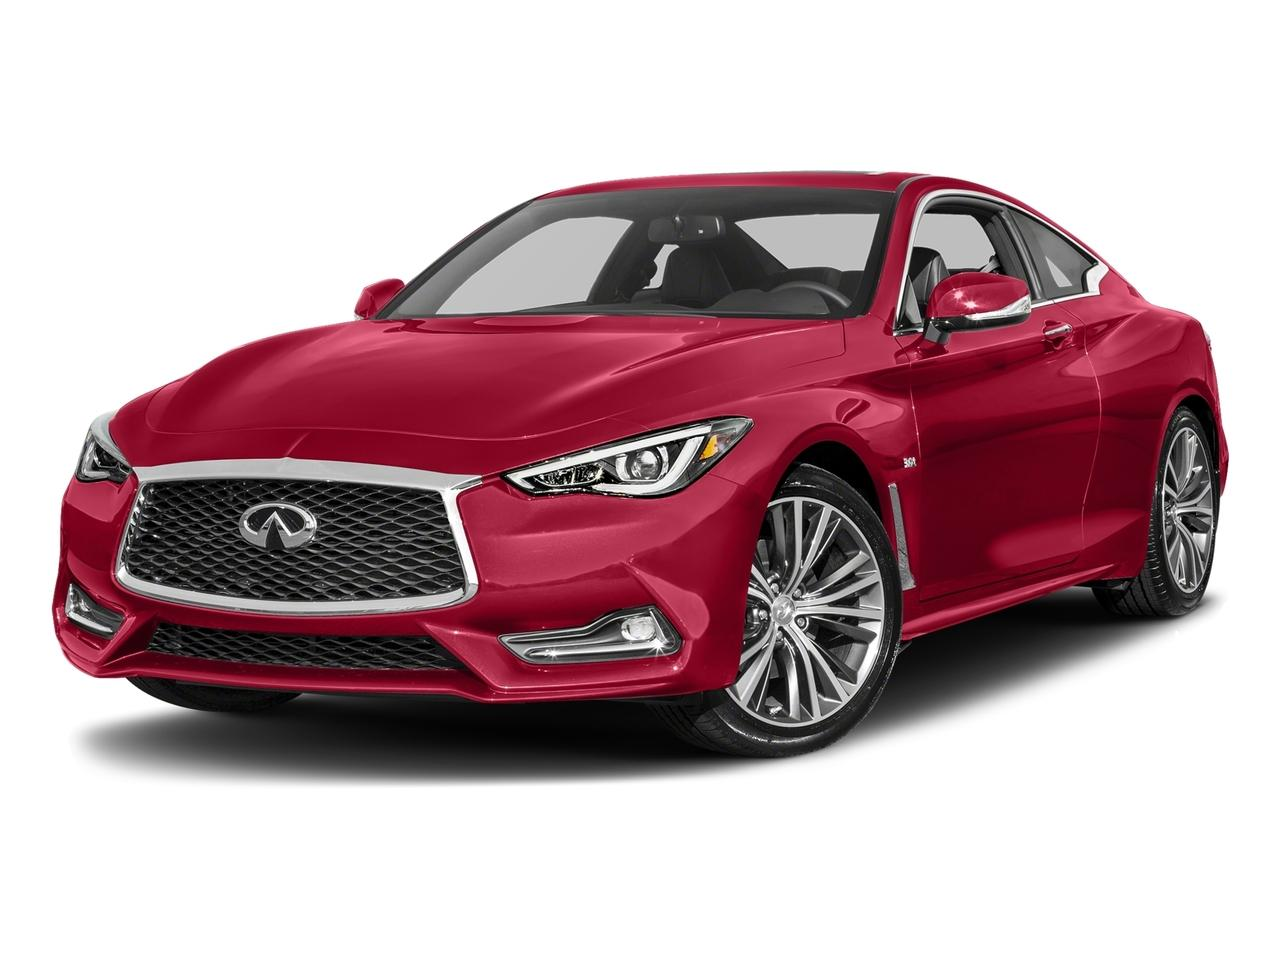 2017 INFINITI Q60 Vehicle Photo in Colma, CA 94014